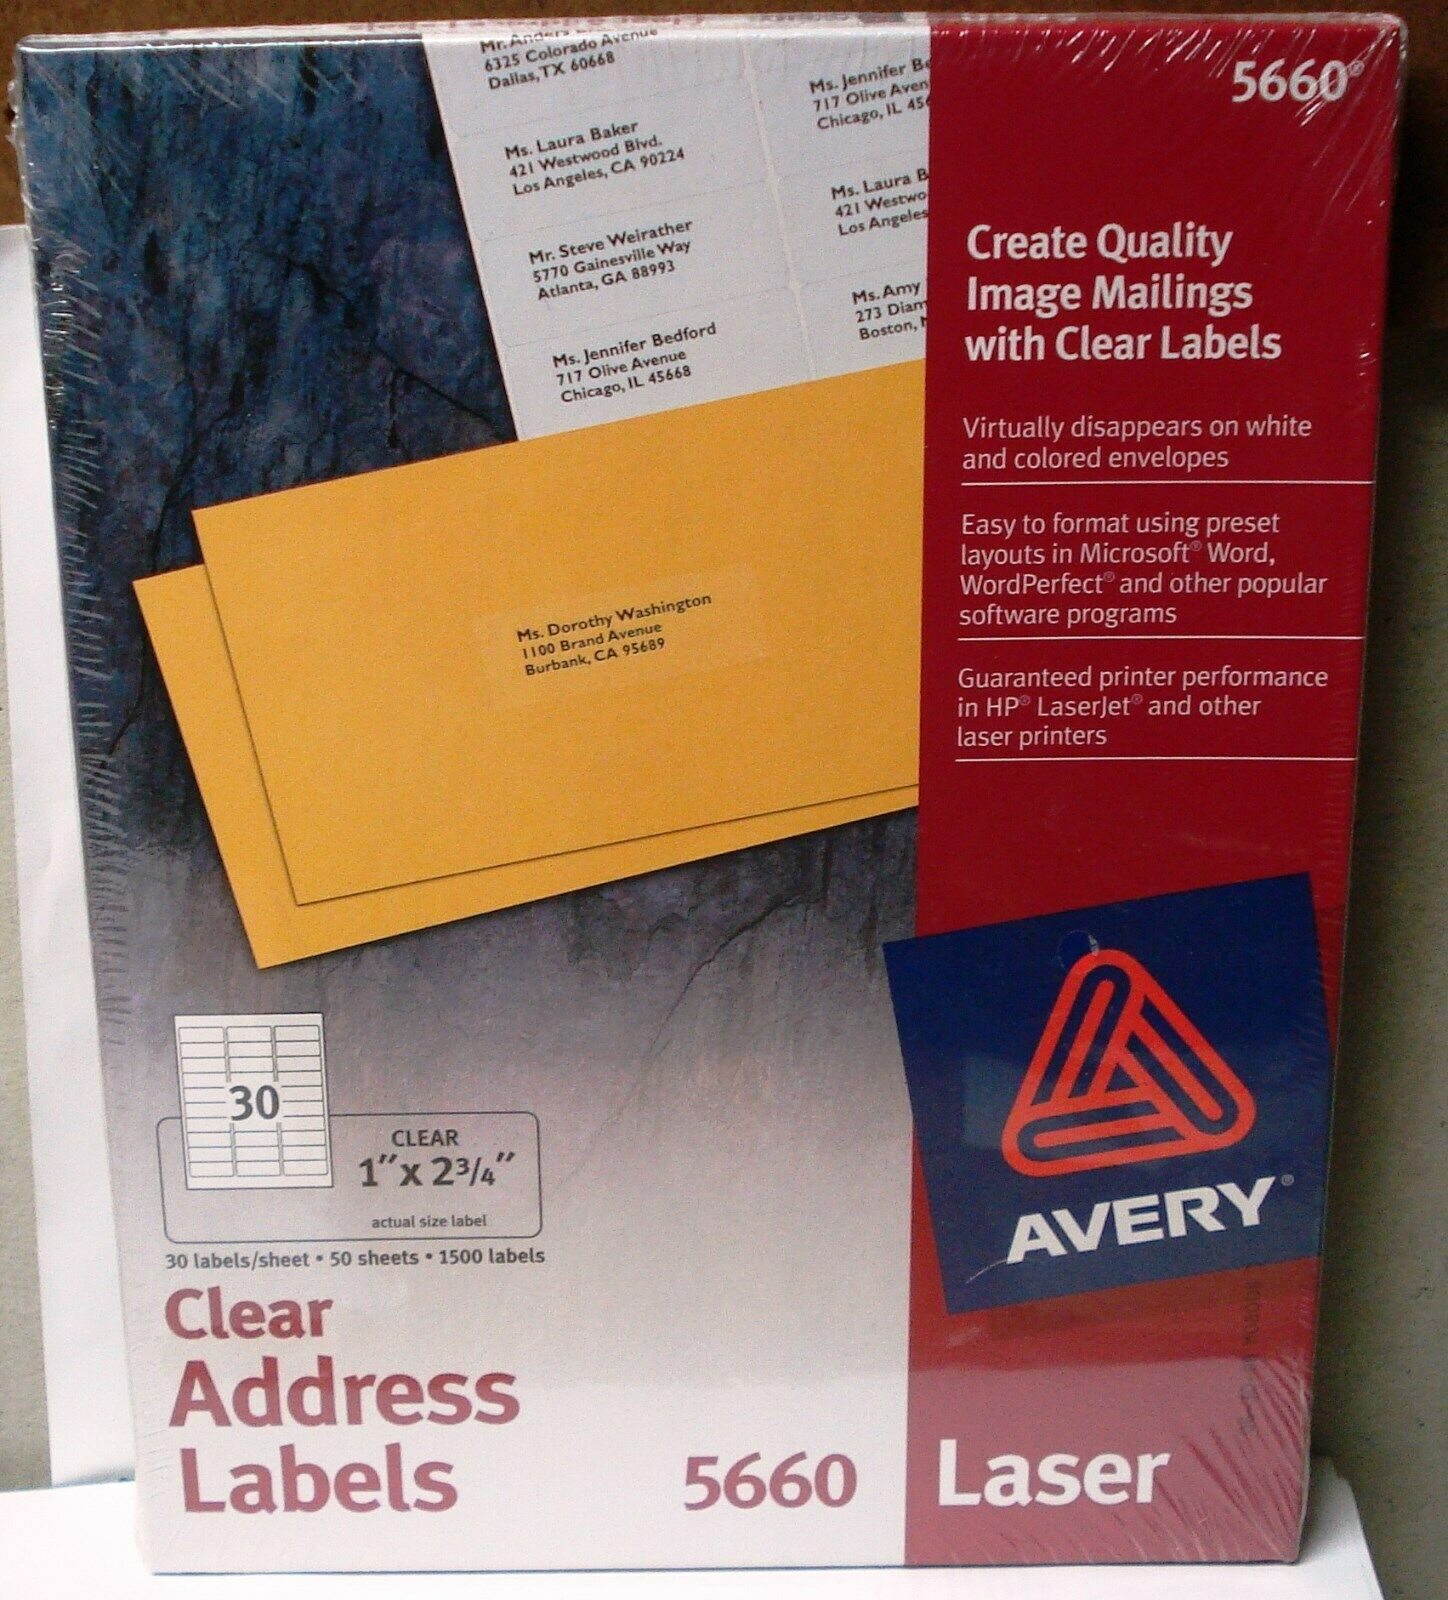 Avery 5660 Easy Peel Mailing Address Labels 1 X 2 3 4 In Clear 1500 Count